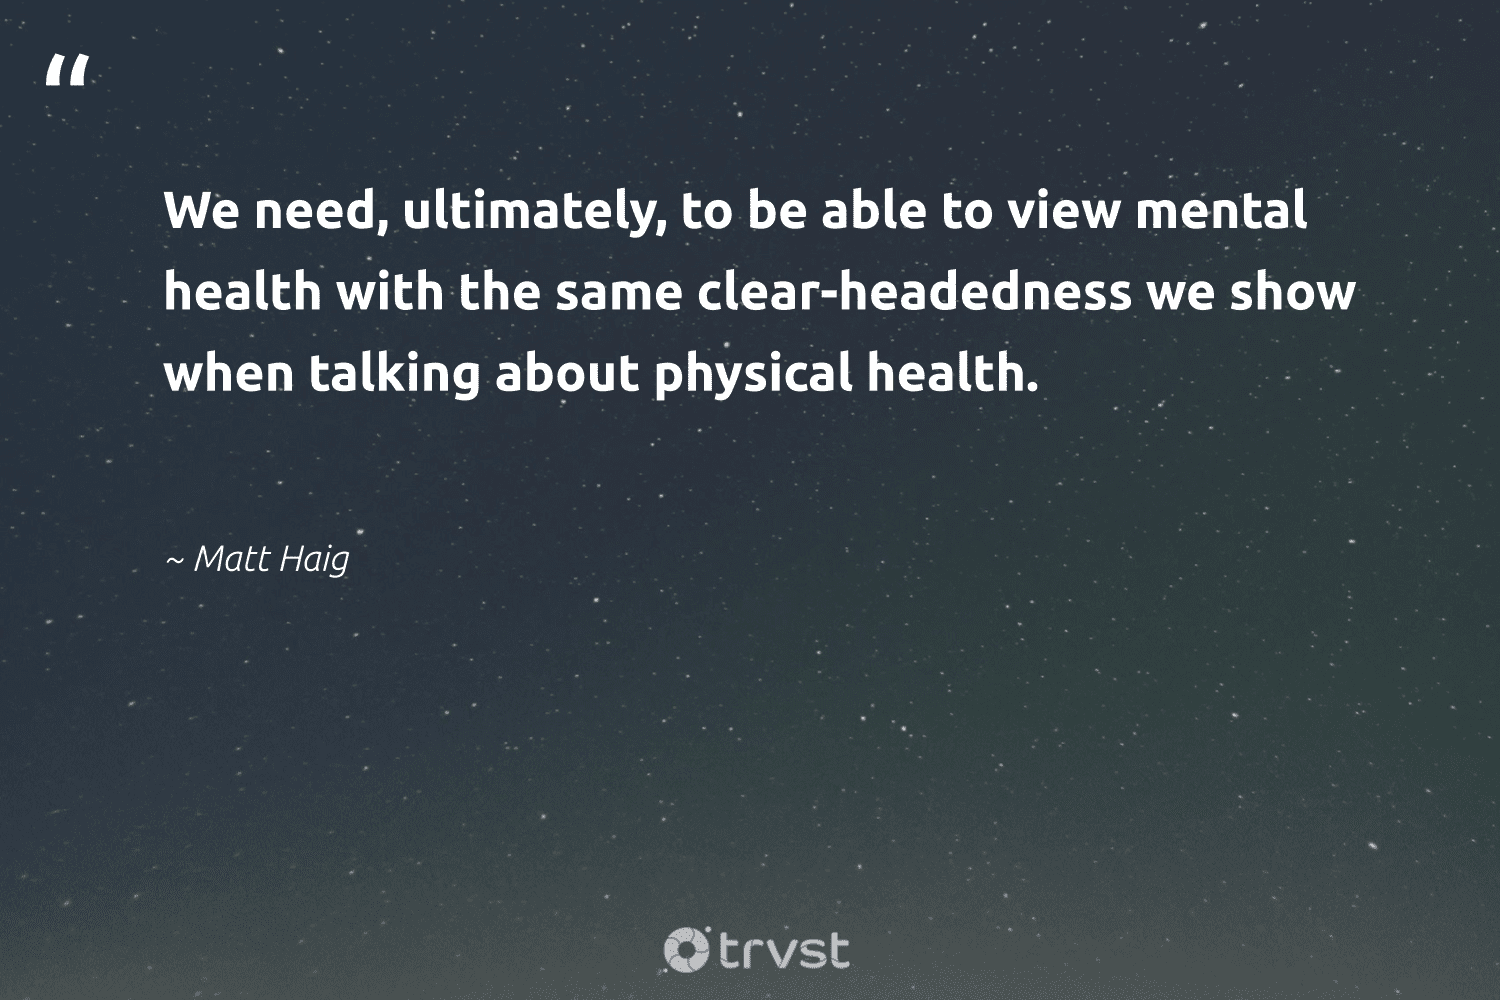 """""""We need, ultimately, to be able to view mental health with the same clear-headedness we show when talking about physical health.""""  - Matt Haig #trvst #quotes #mentalhealth #health #anxiety #mindset #togetherwecan #collectiveaction #mentalhealthawareness #begreat #nevergiveup #dotherightthing"""